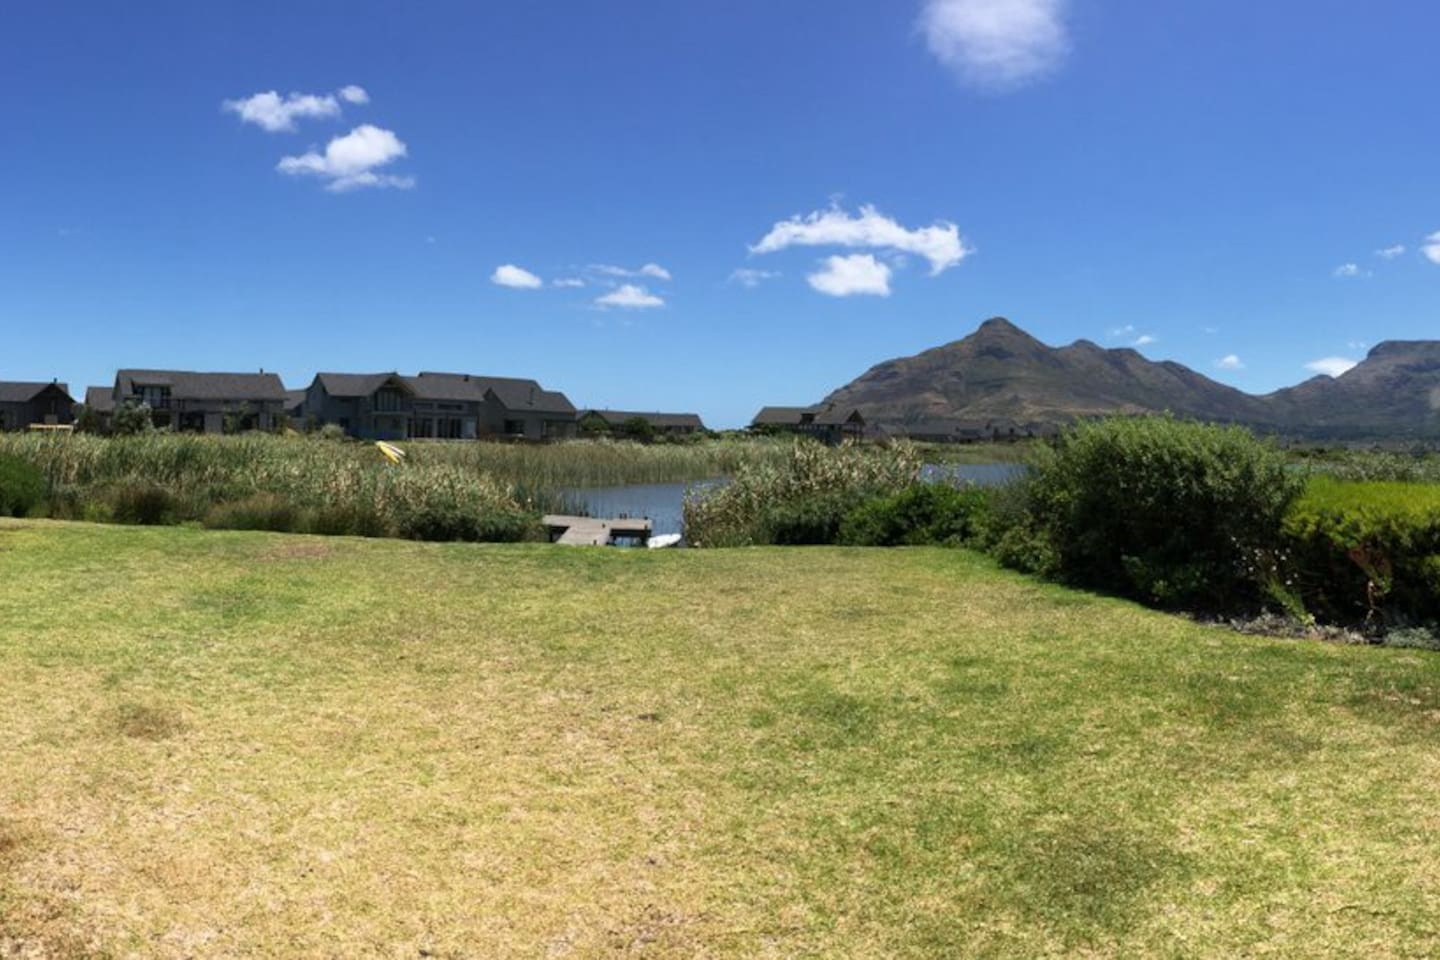 The view from the front lawn. Note -No boundary fence before the water.